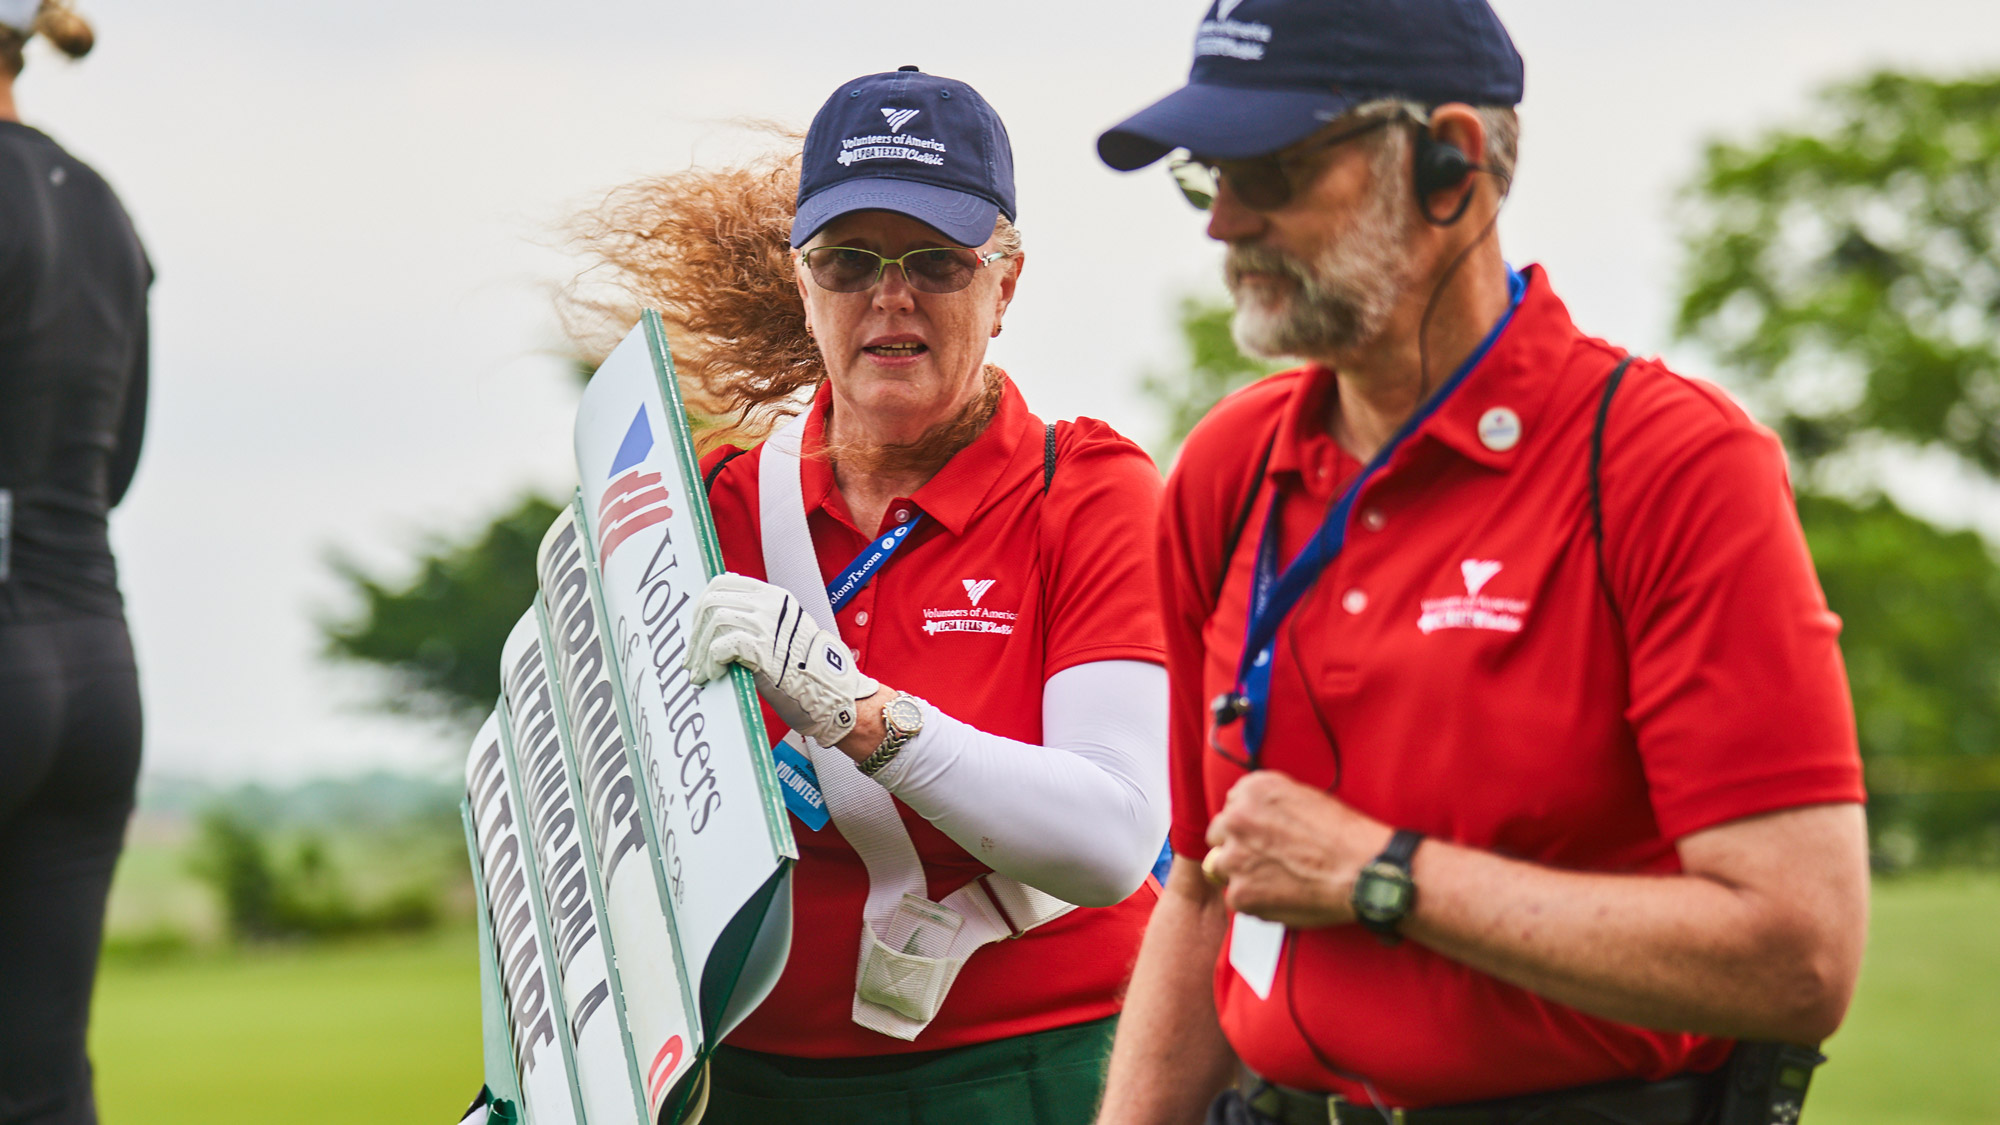 Volunteers Come in From Wind and Storms at VOA LPGA Texas Classic